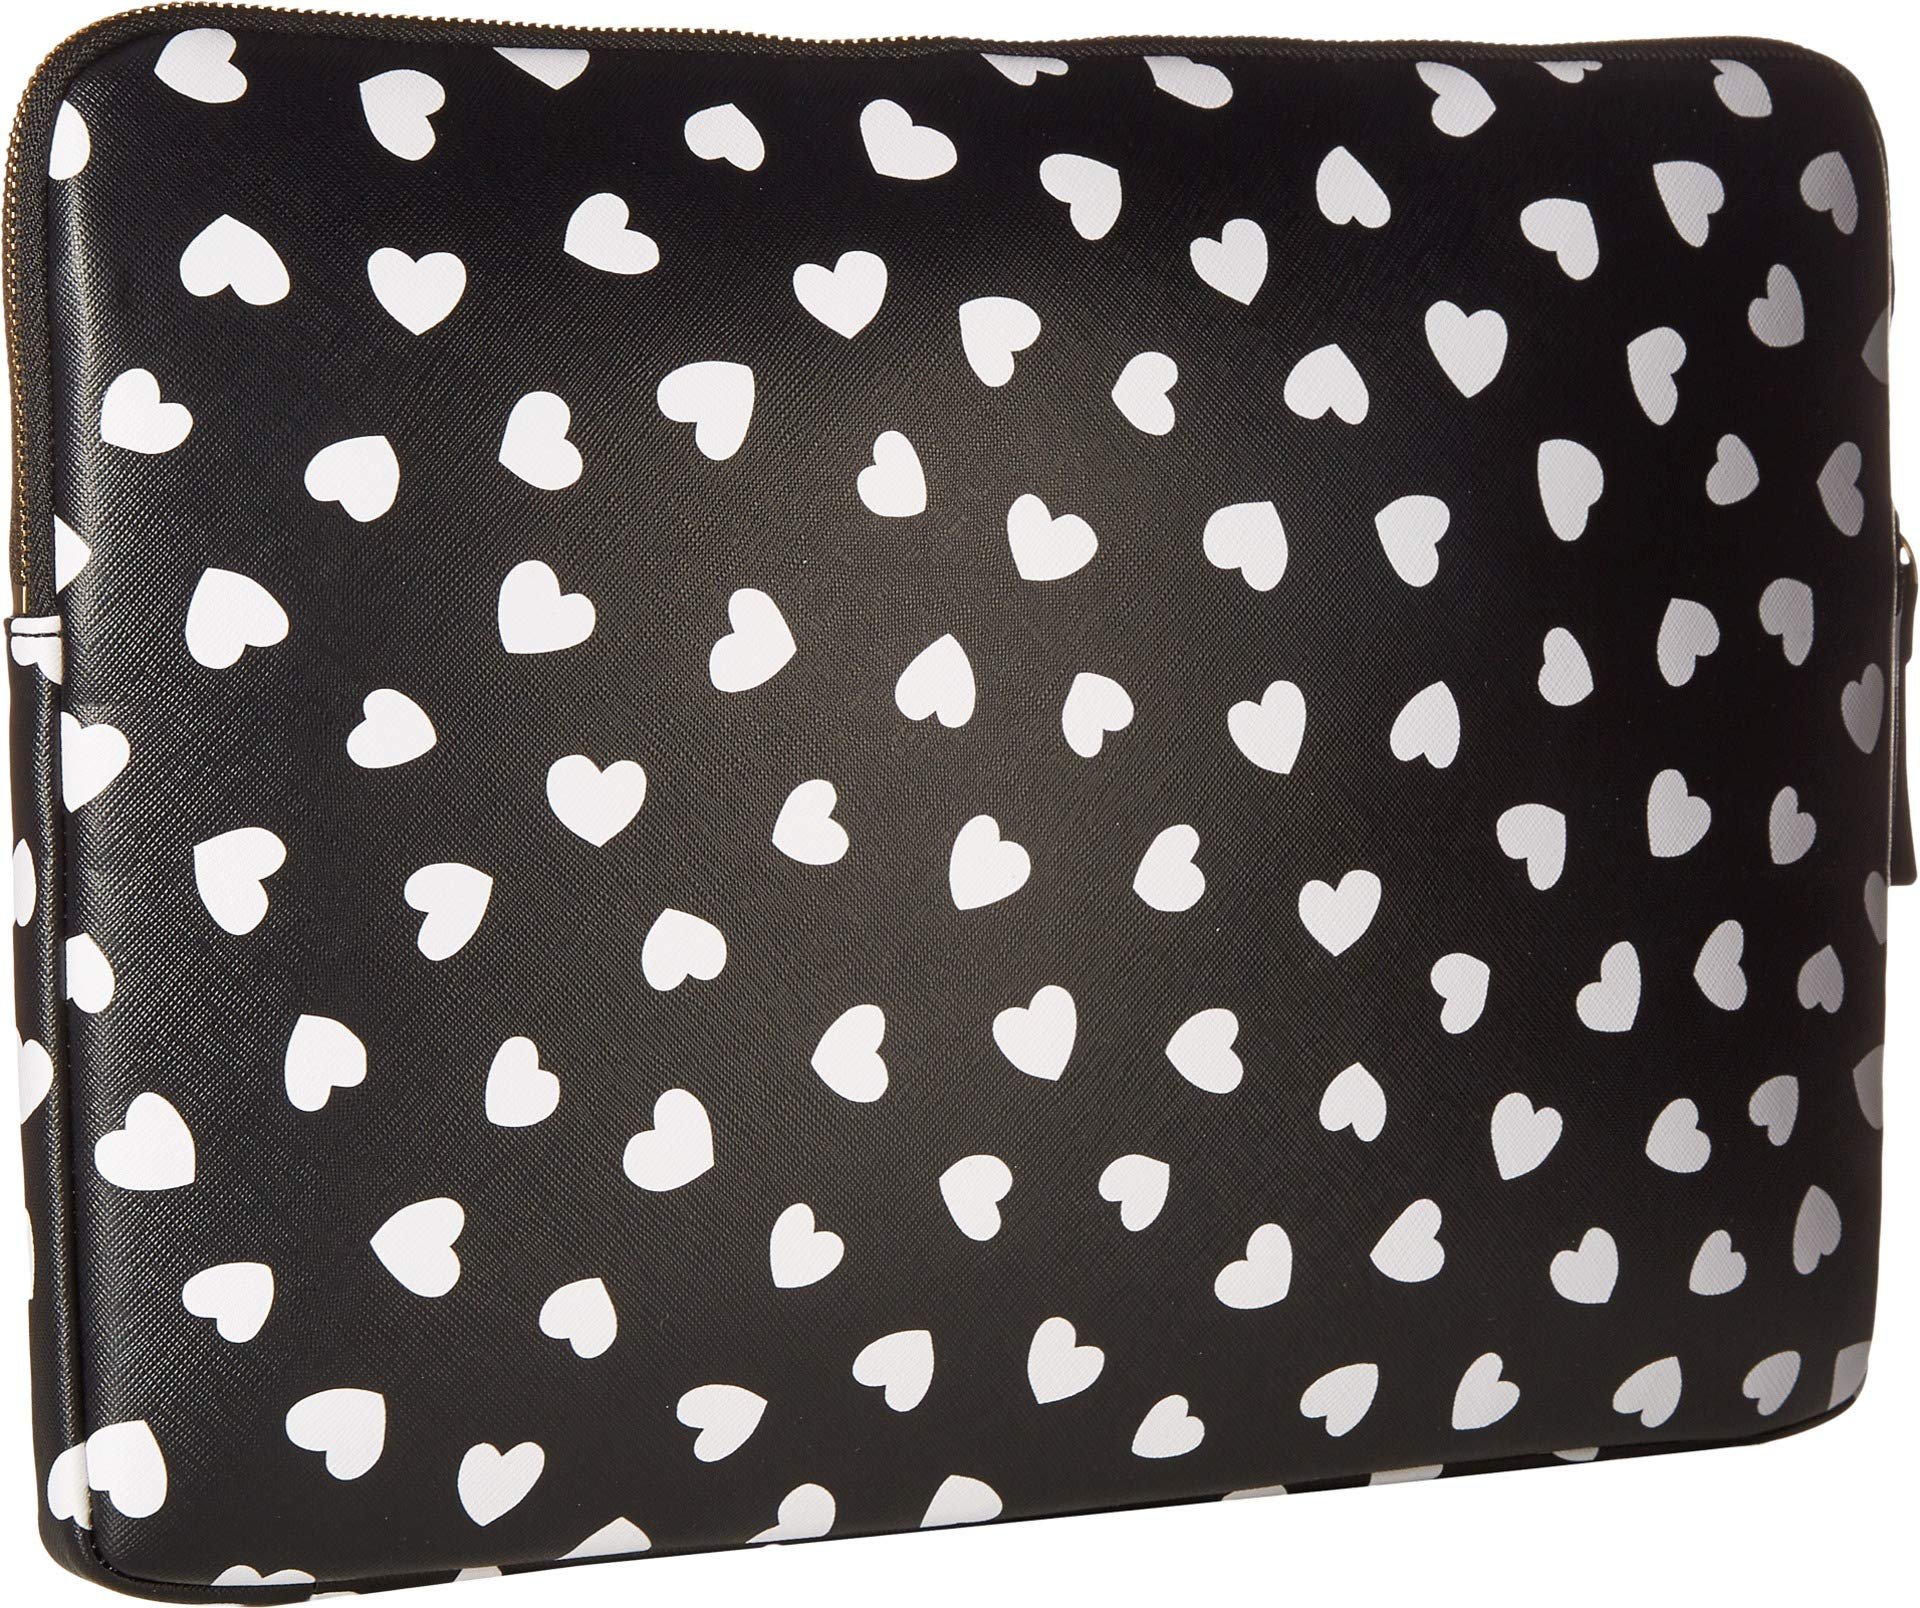 Kate Spade New York Heartbeat Universal Laptop Sleeve, Black/Cream, One Size by Kate Spade New York (Image #2)